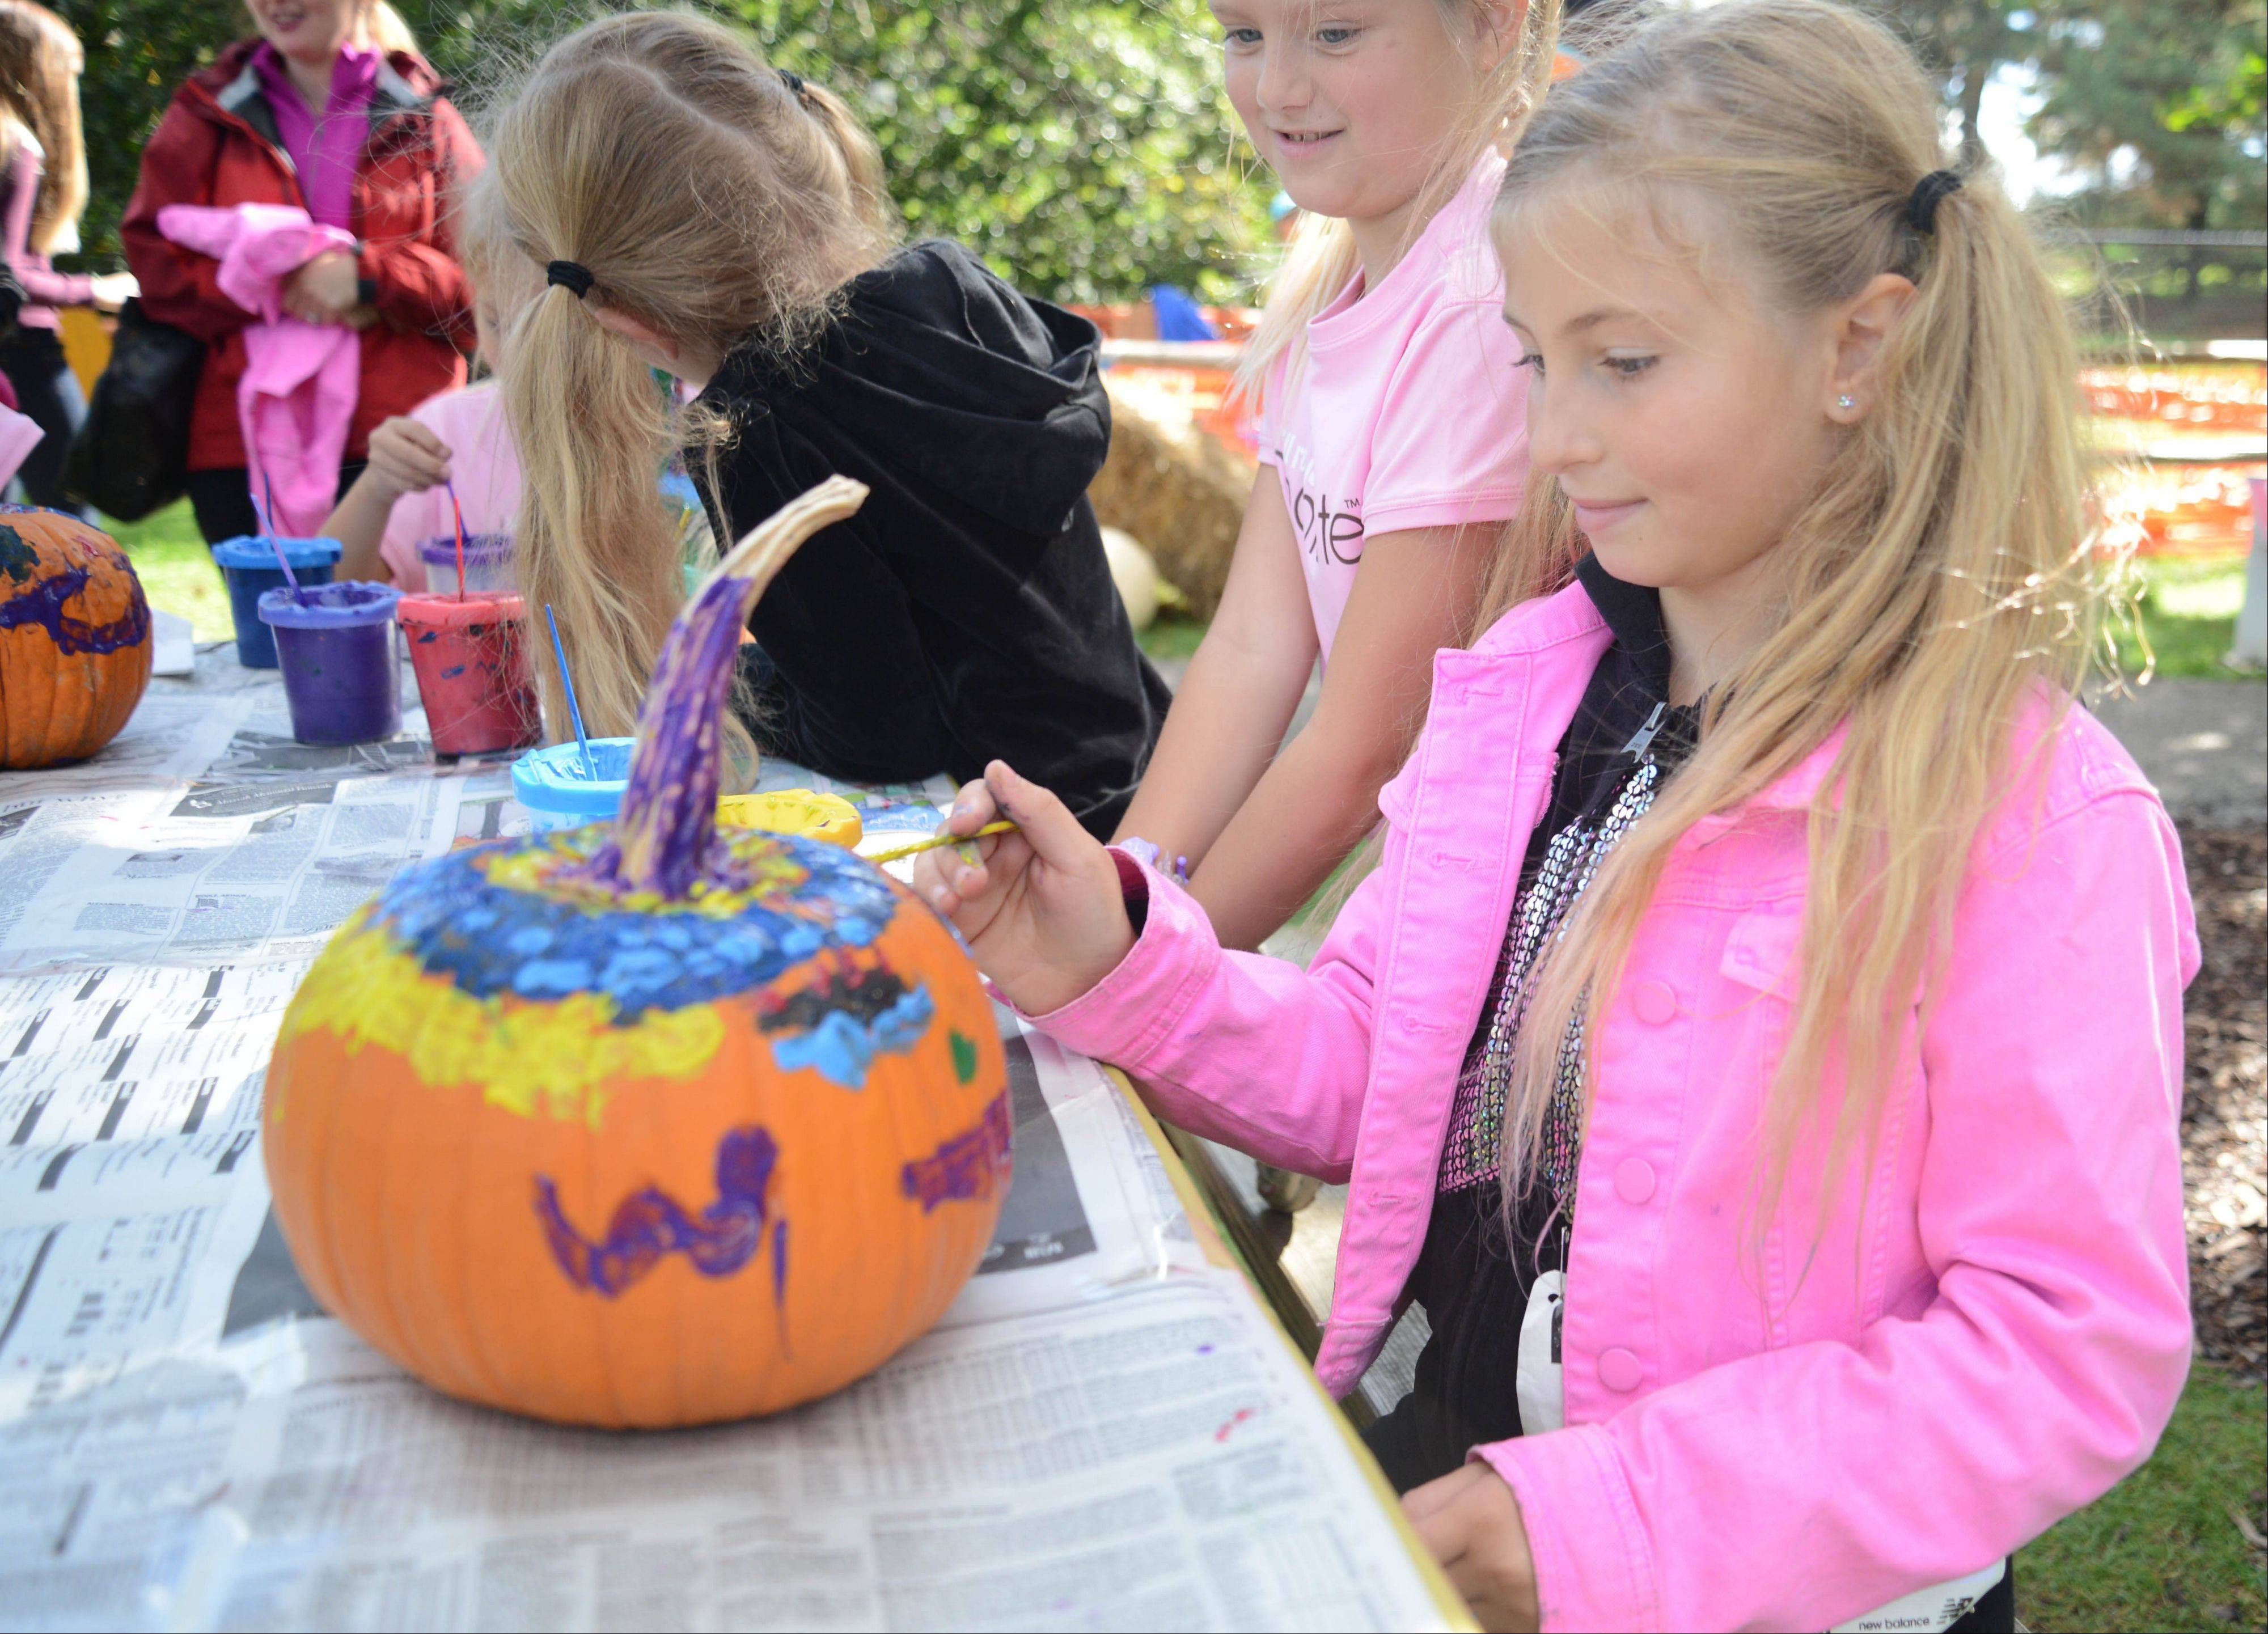 Lorelai Francis, 7, of Addison paints a pumpkin Sunday at the Morton Arboretum's Fall Color Festival Sunday. The event kicked off Sunday with a 5K run and walk and included seasonal food, a Scarecrow Trail around Meadow Lake and numerous other activities.